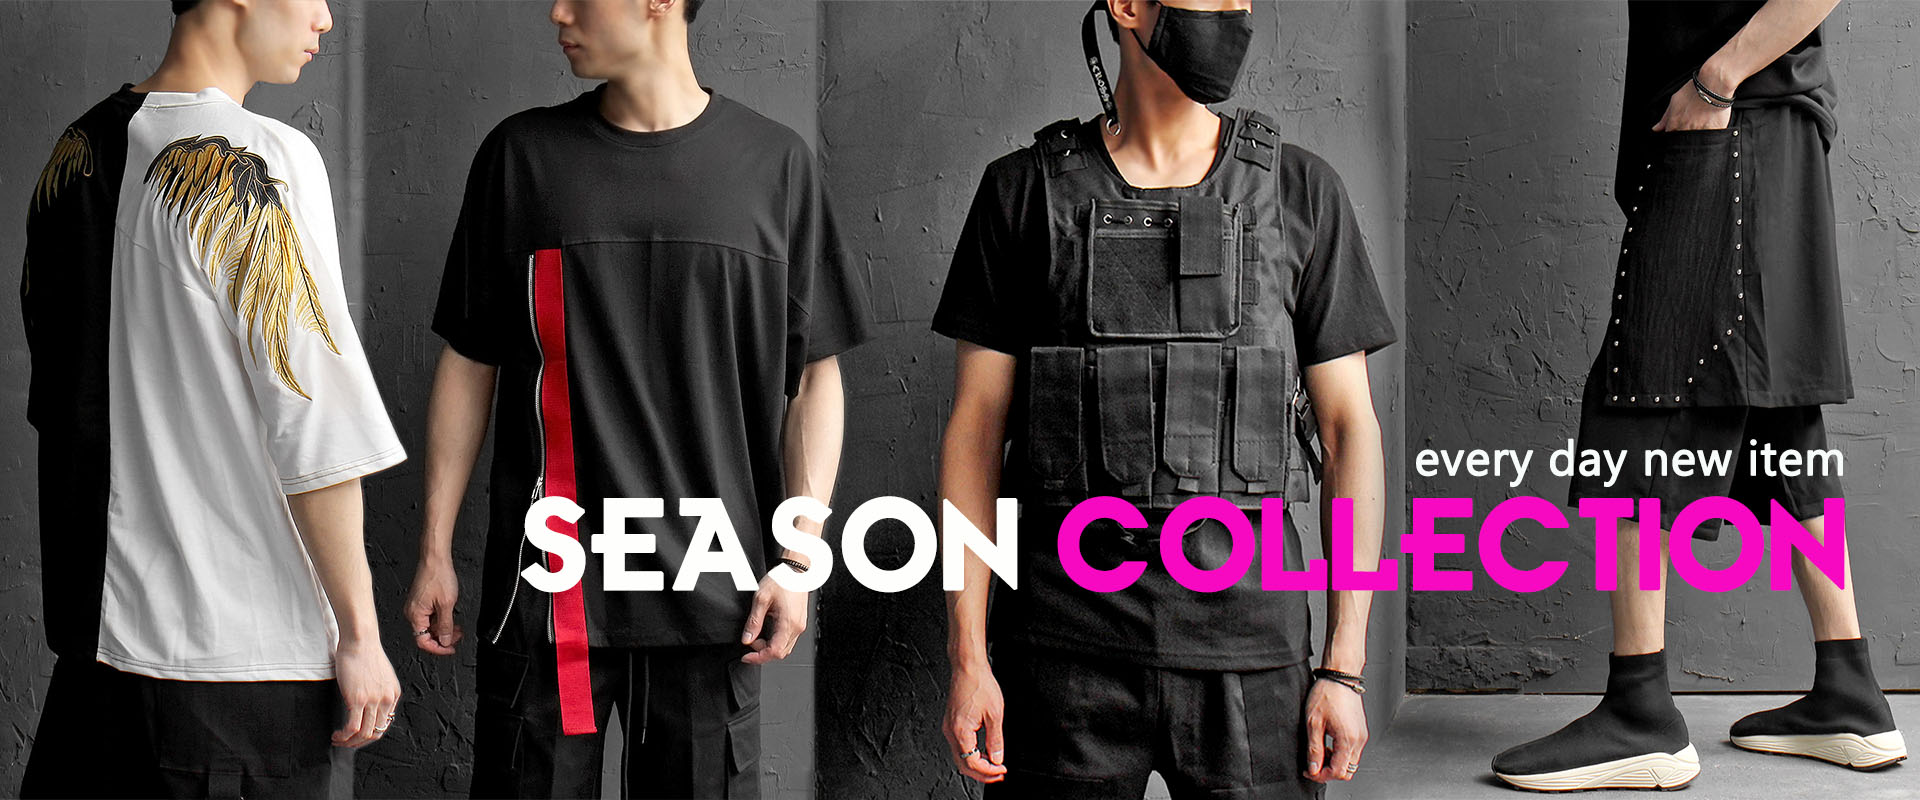 SEASONCOLLECTION